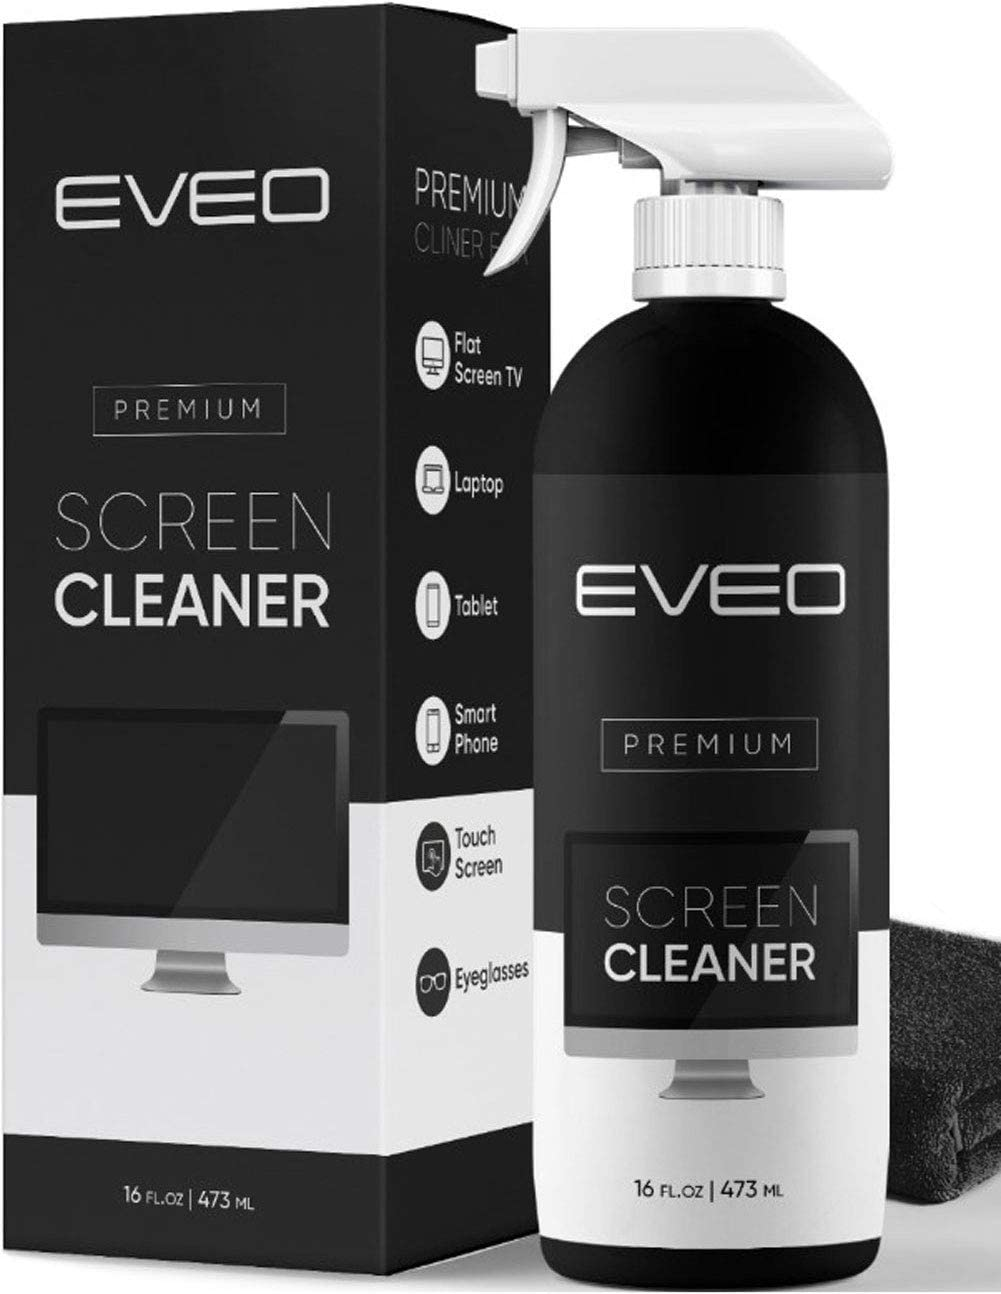 A bottle of EVEO Screen Cleaner Spray near its packaging.